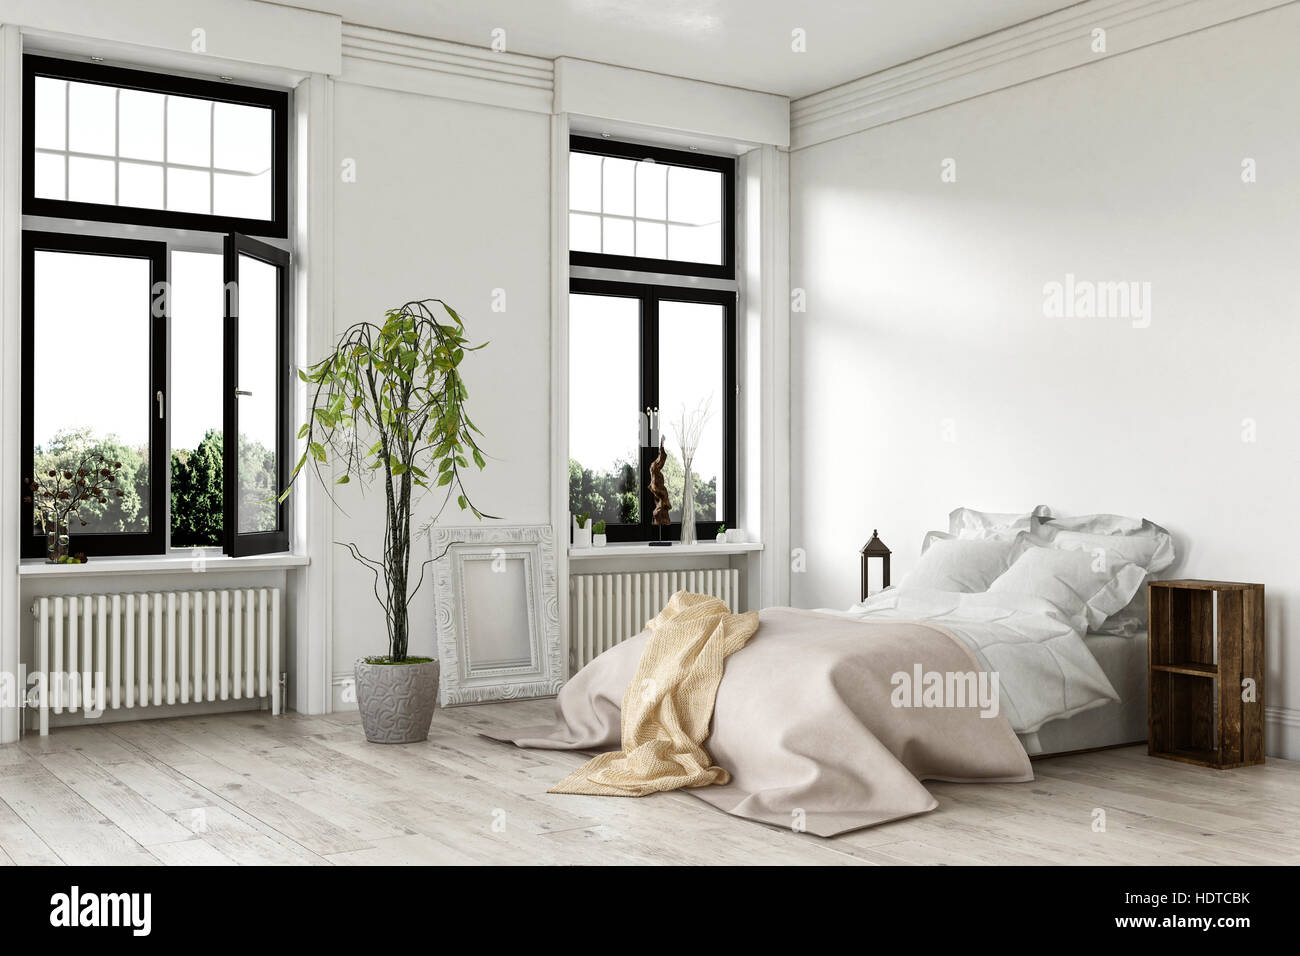 Airy bright white bedroom interior with large double windows and a ...